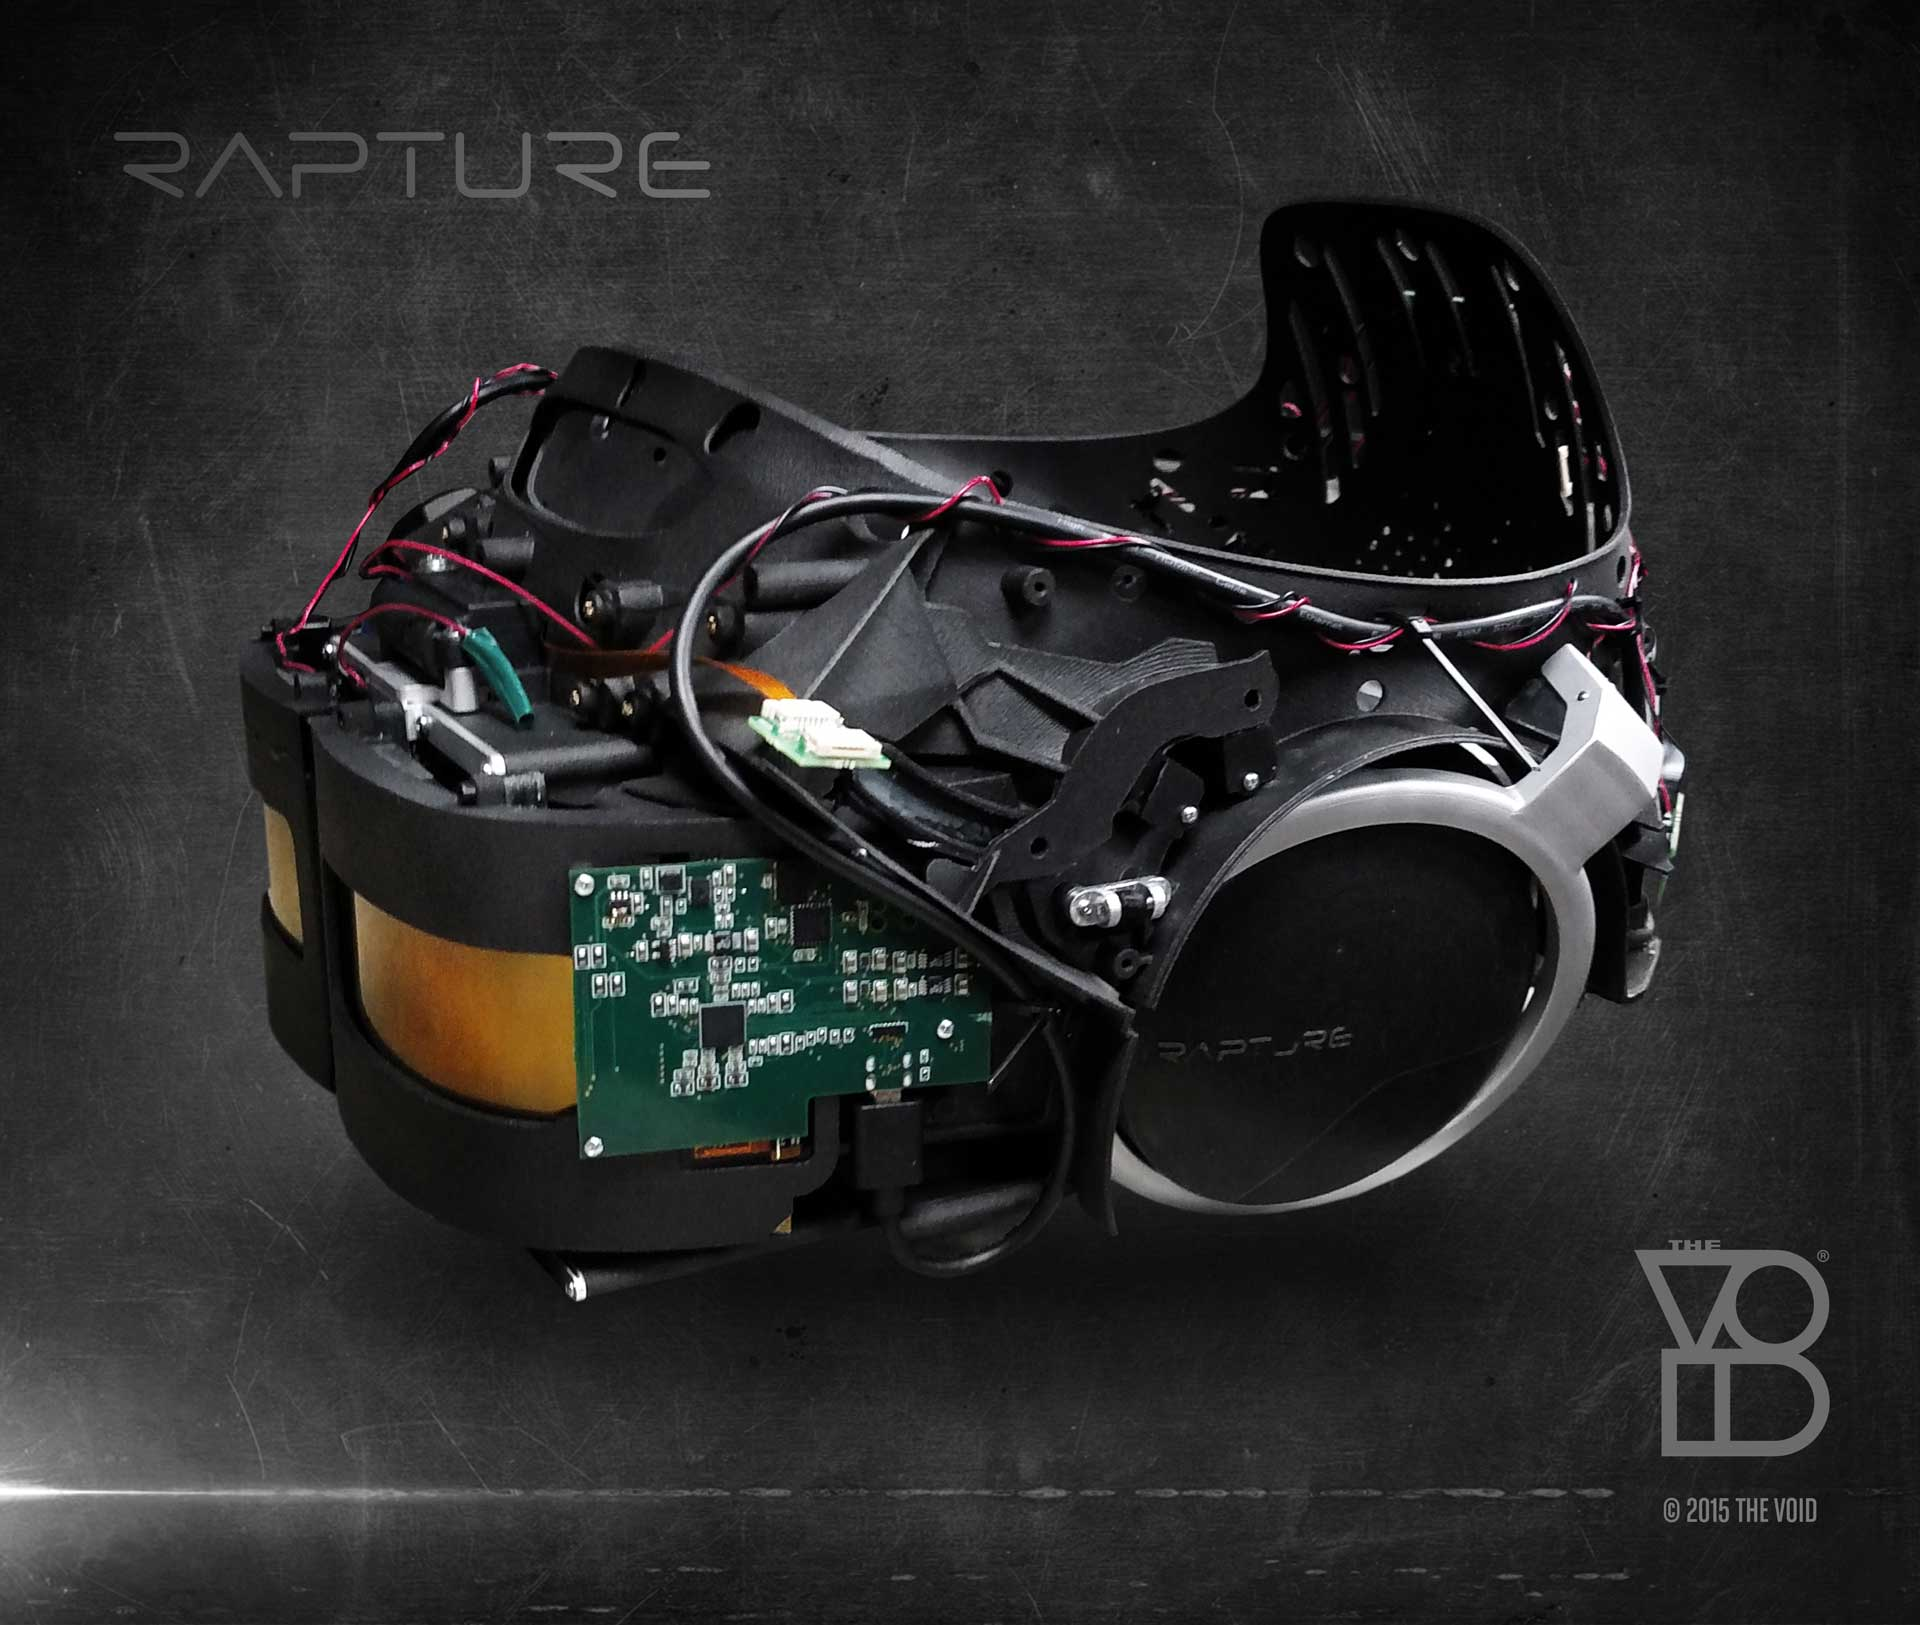 First Look The Void S 2k Rapture Vr Headset